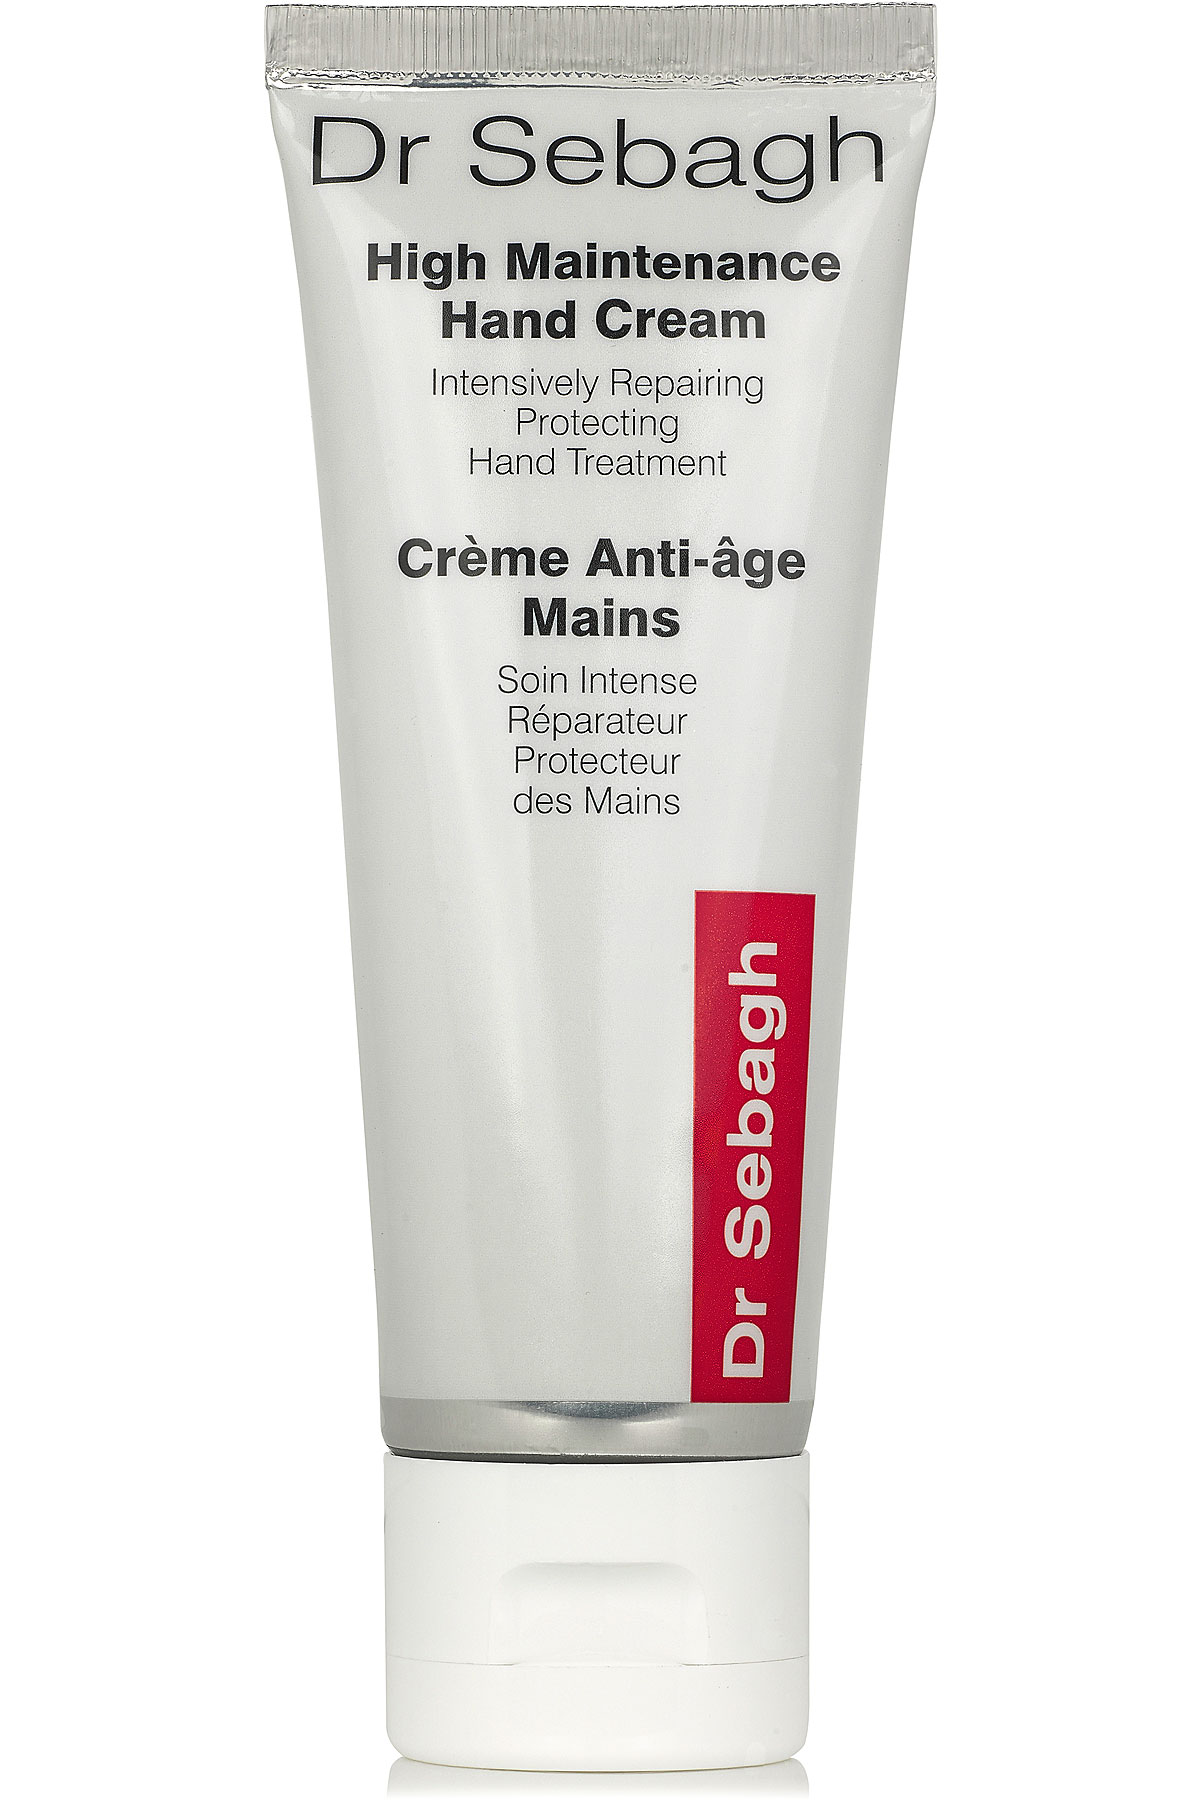 Dr Sebagh Beauty for Women, High Maintenance Hand Cream - 75 Ml, 2019, 75 ml